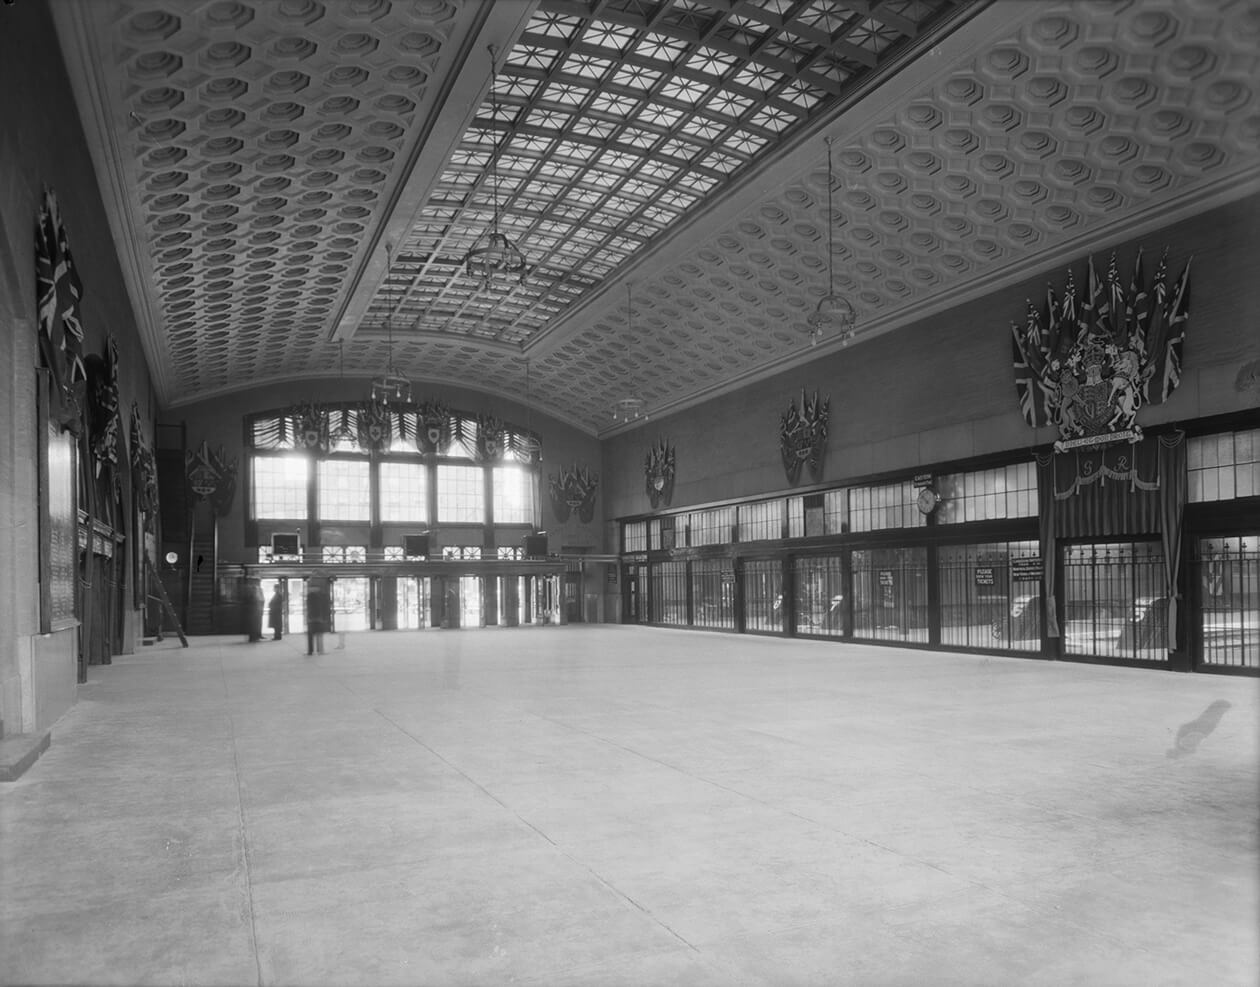 A 1939 view of a large empty concourse.